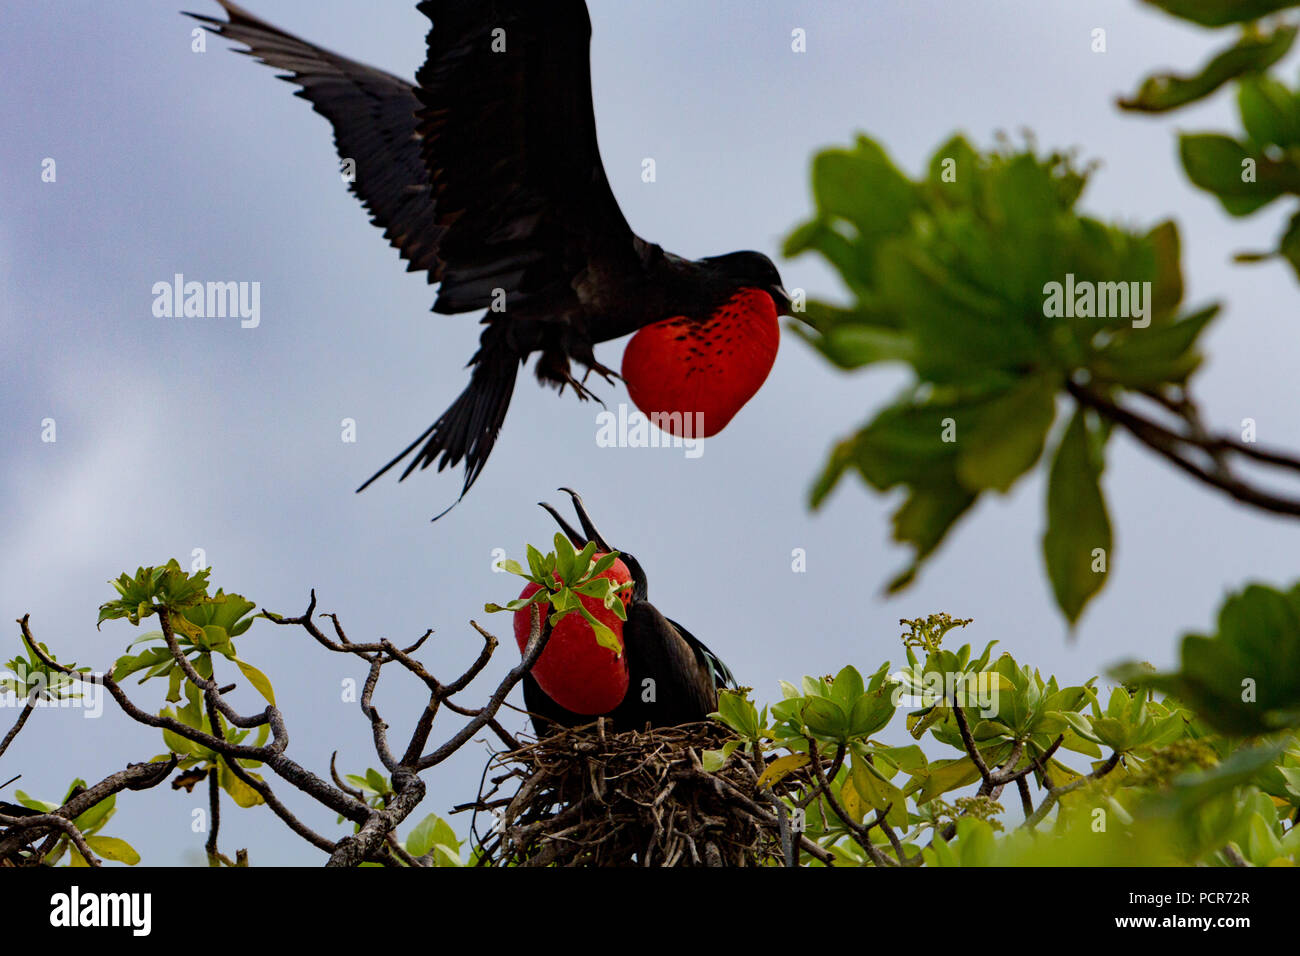 Nesting frigatebirds on Millenium or Caroline atoll in the southern Line Islands of Kiribati. - Stock Image